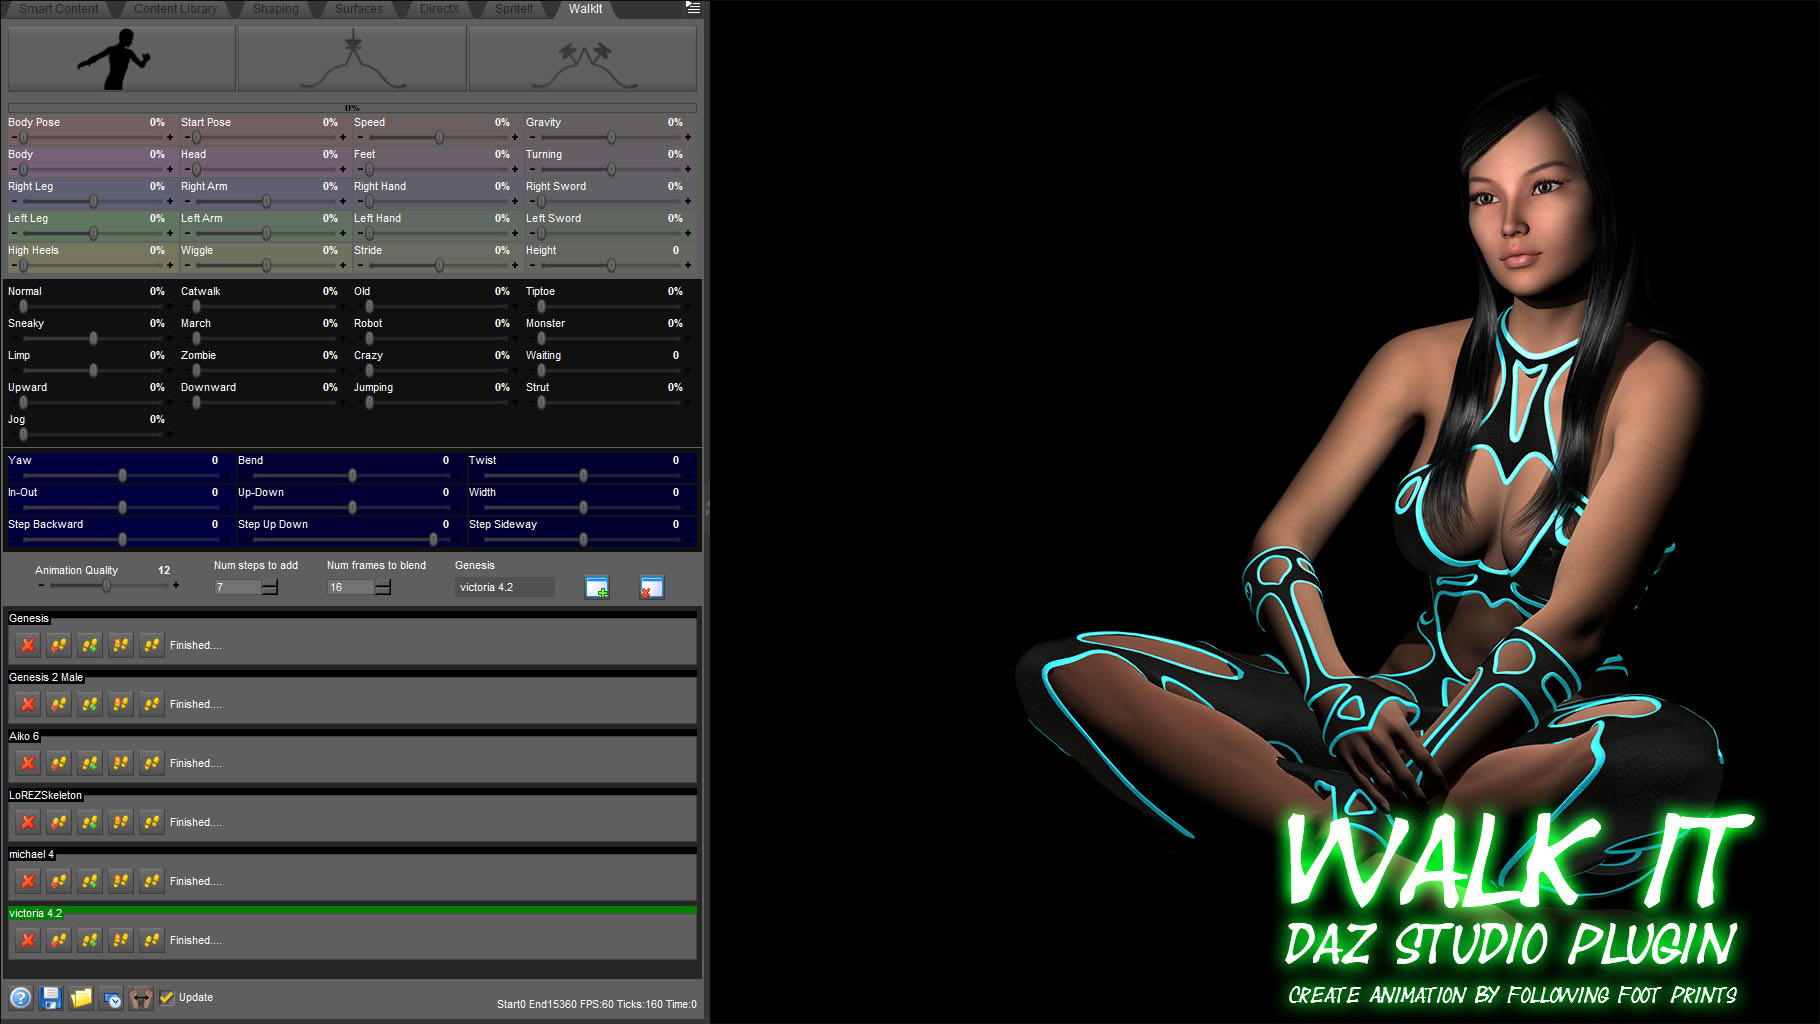 Daz Studio Plugin WalkIt Create animation by folling foot prints daz plugin